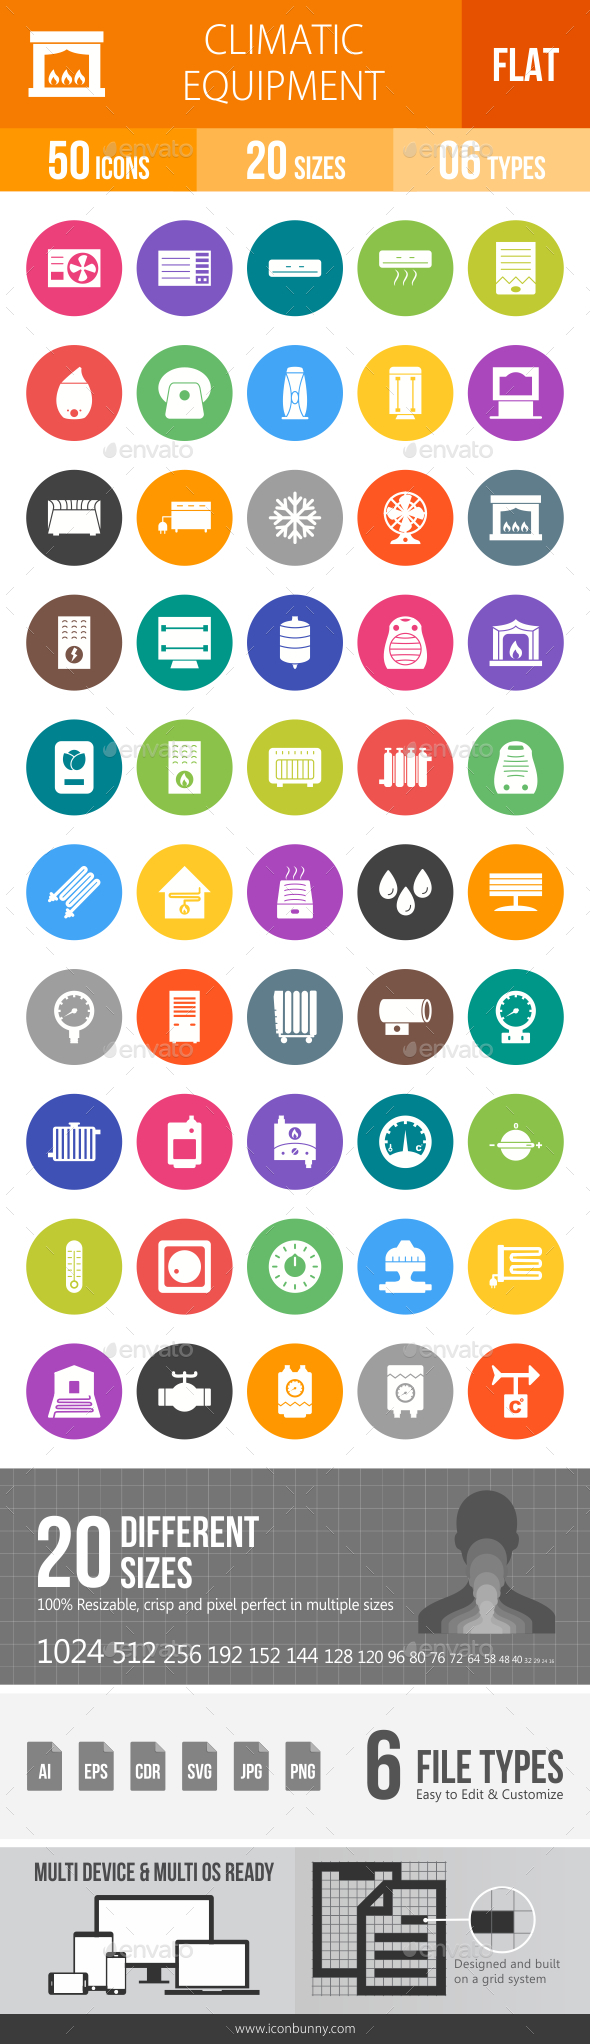 Climatic Equipment Flat Round Icons - Icons